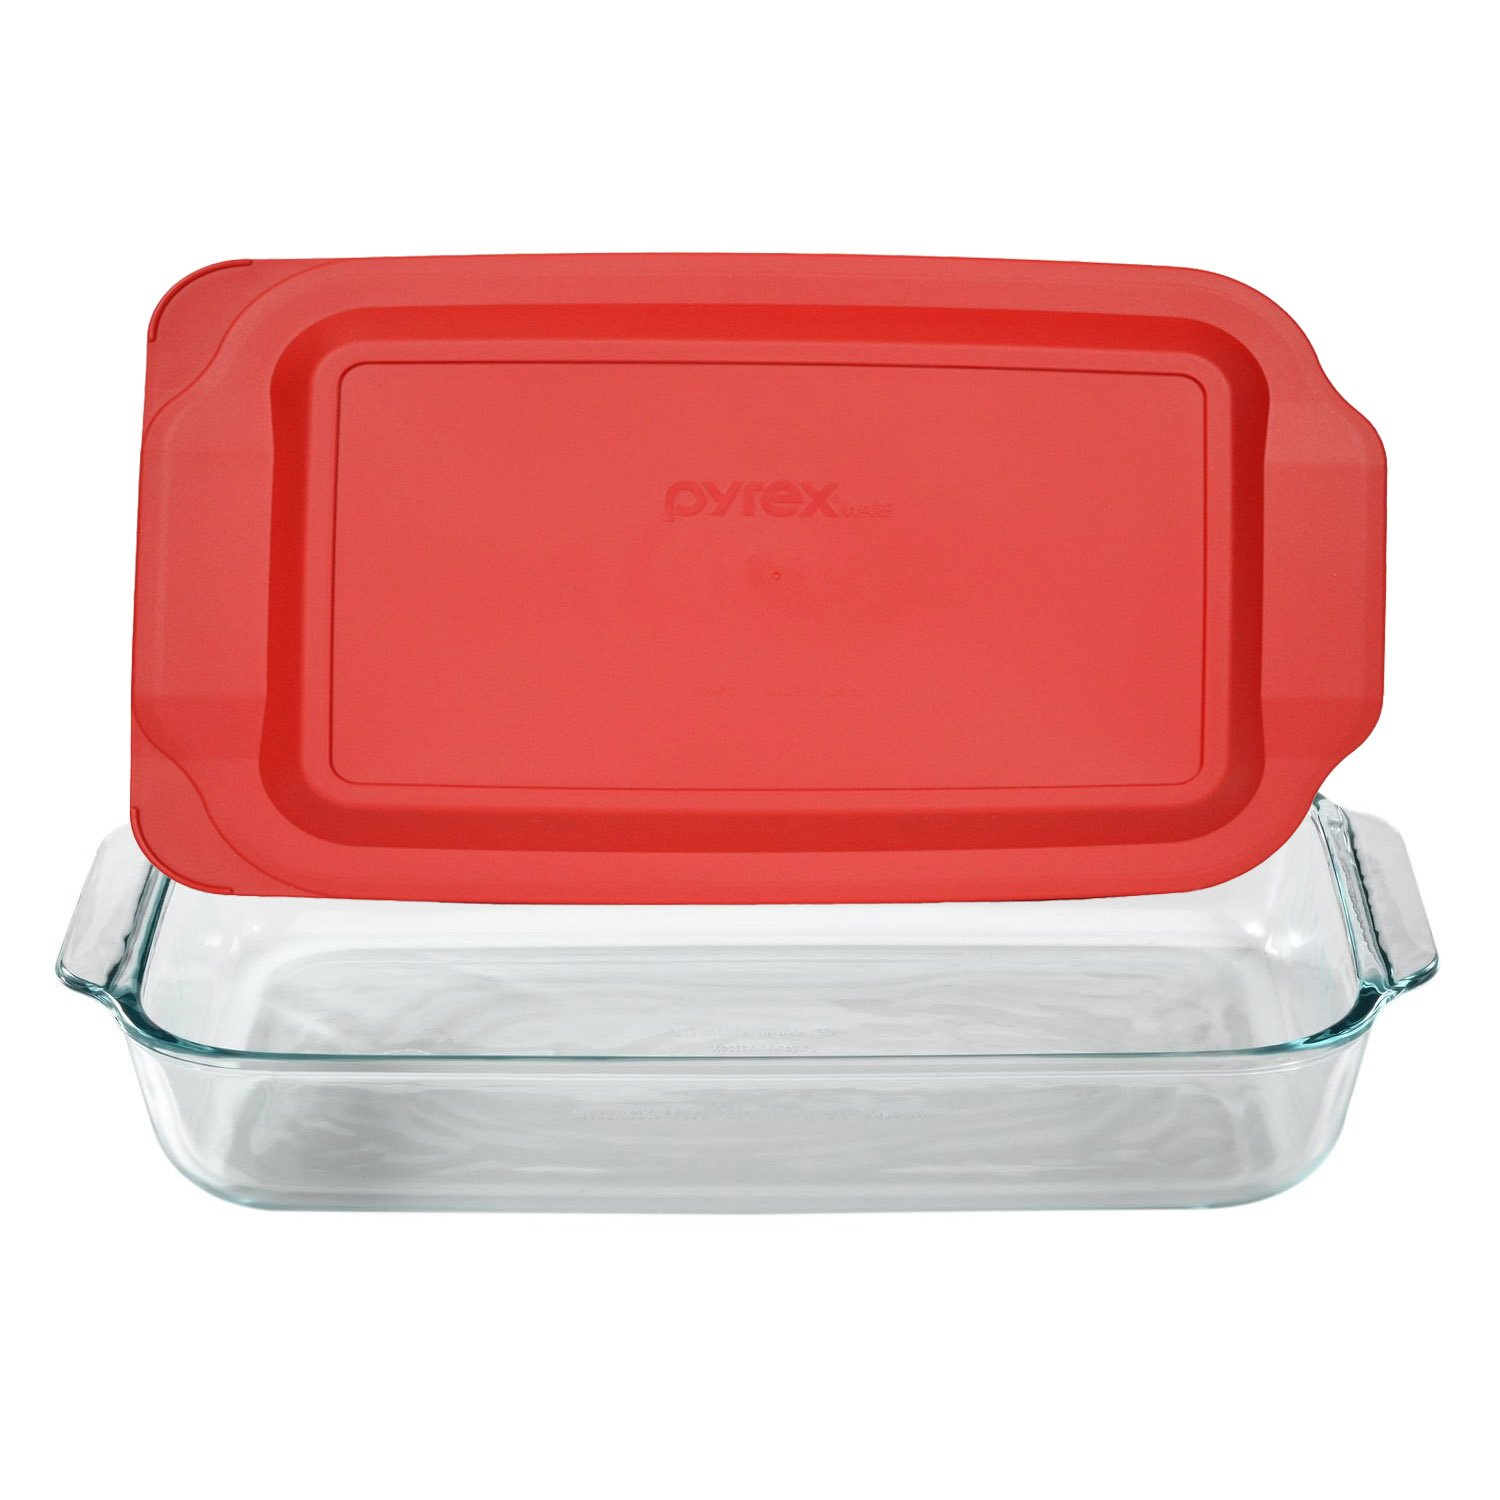 Pyrex 9x13 3Quart Glass Baking Dish with Lid